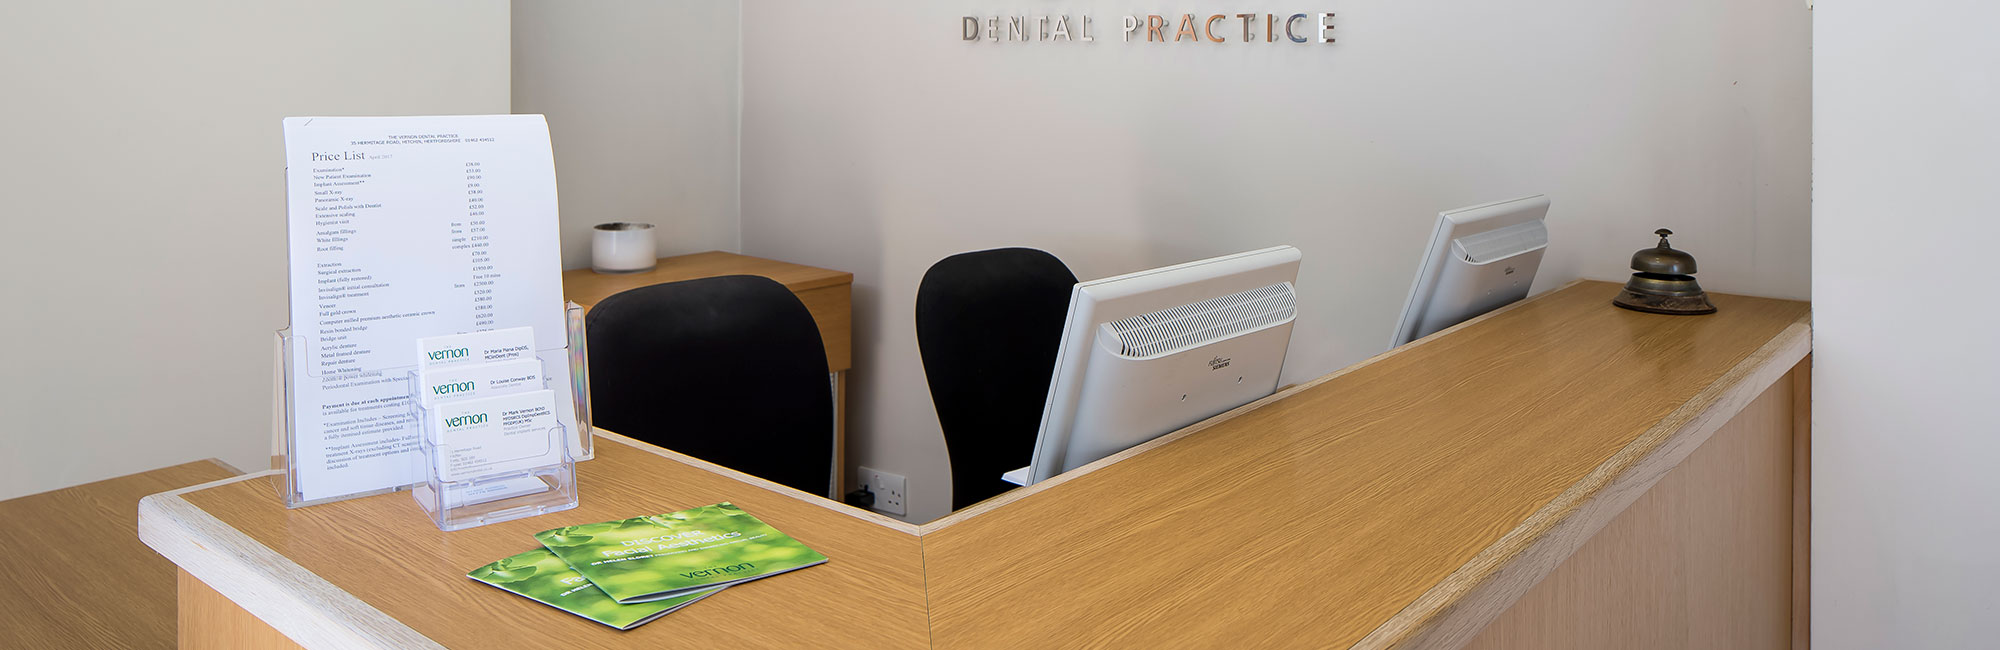 Contact Vernon Dental Practice Team Banner